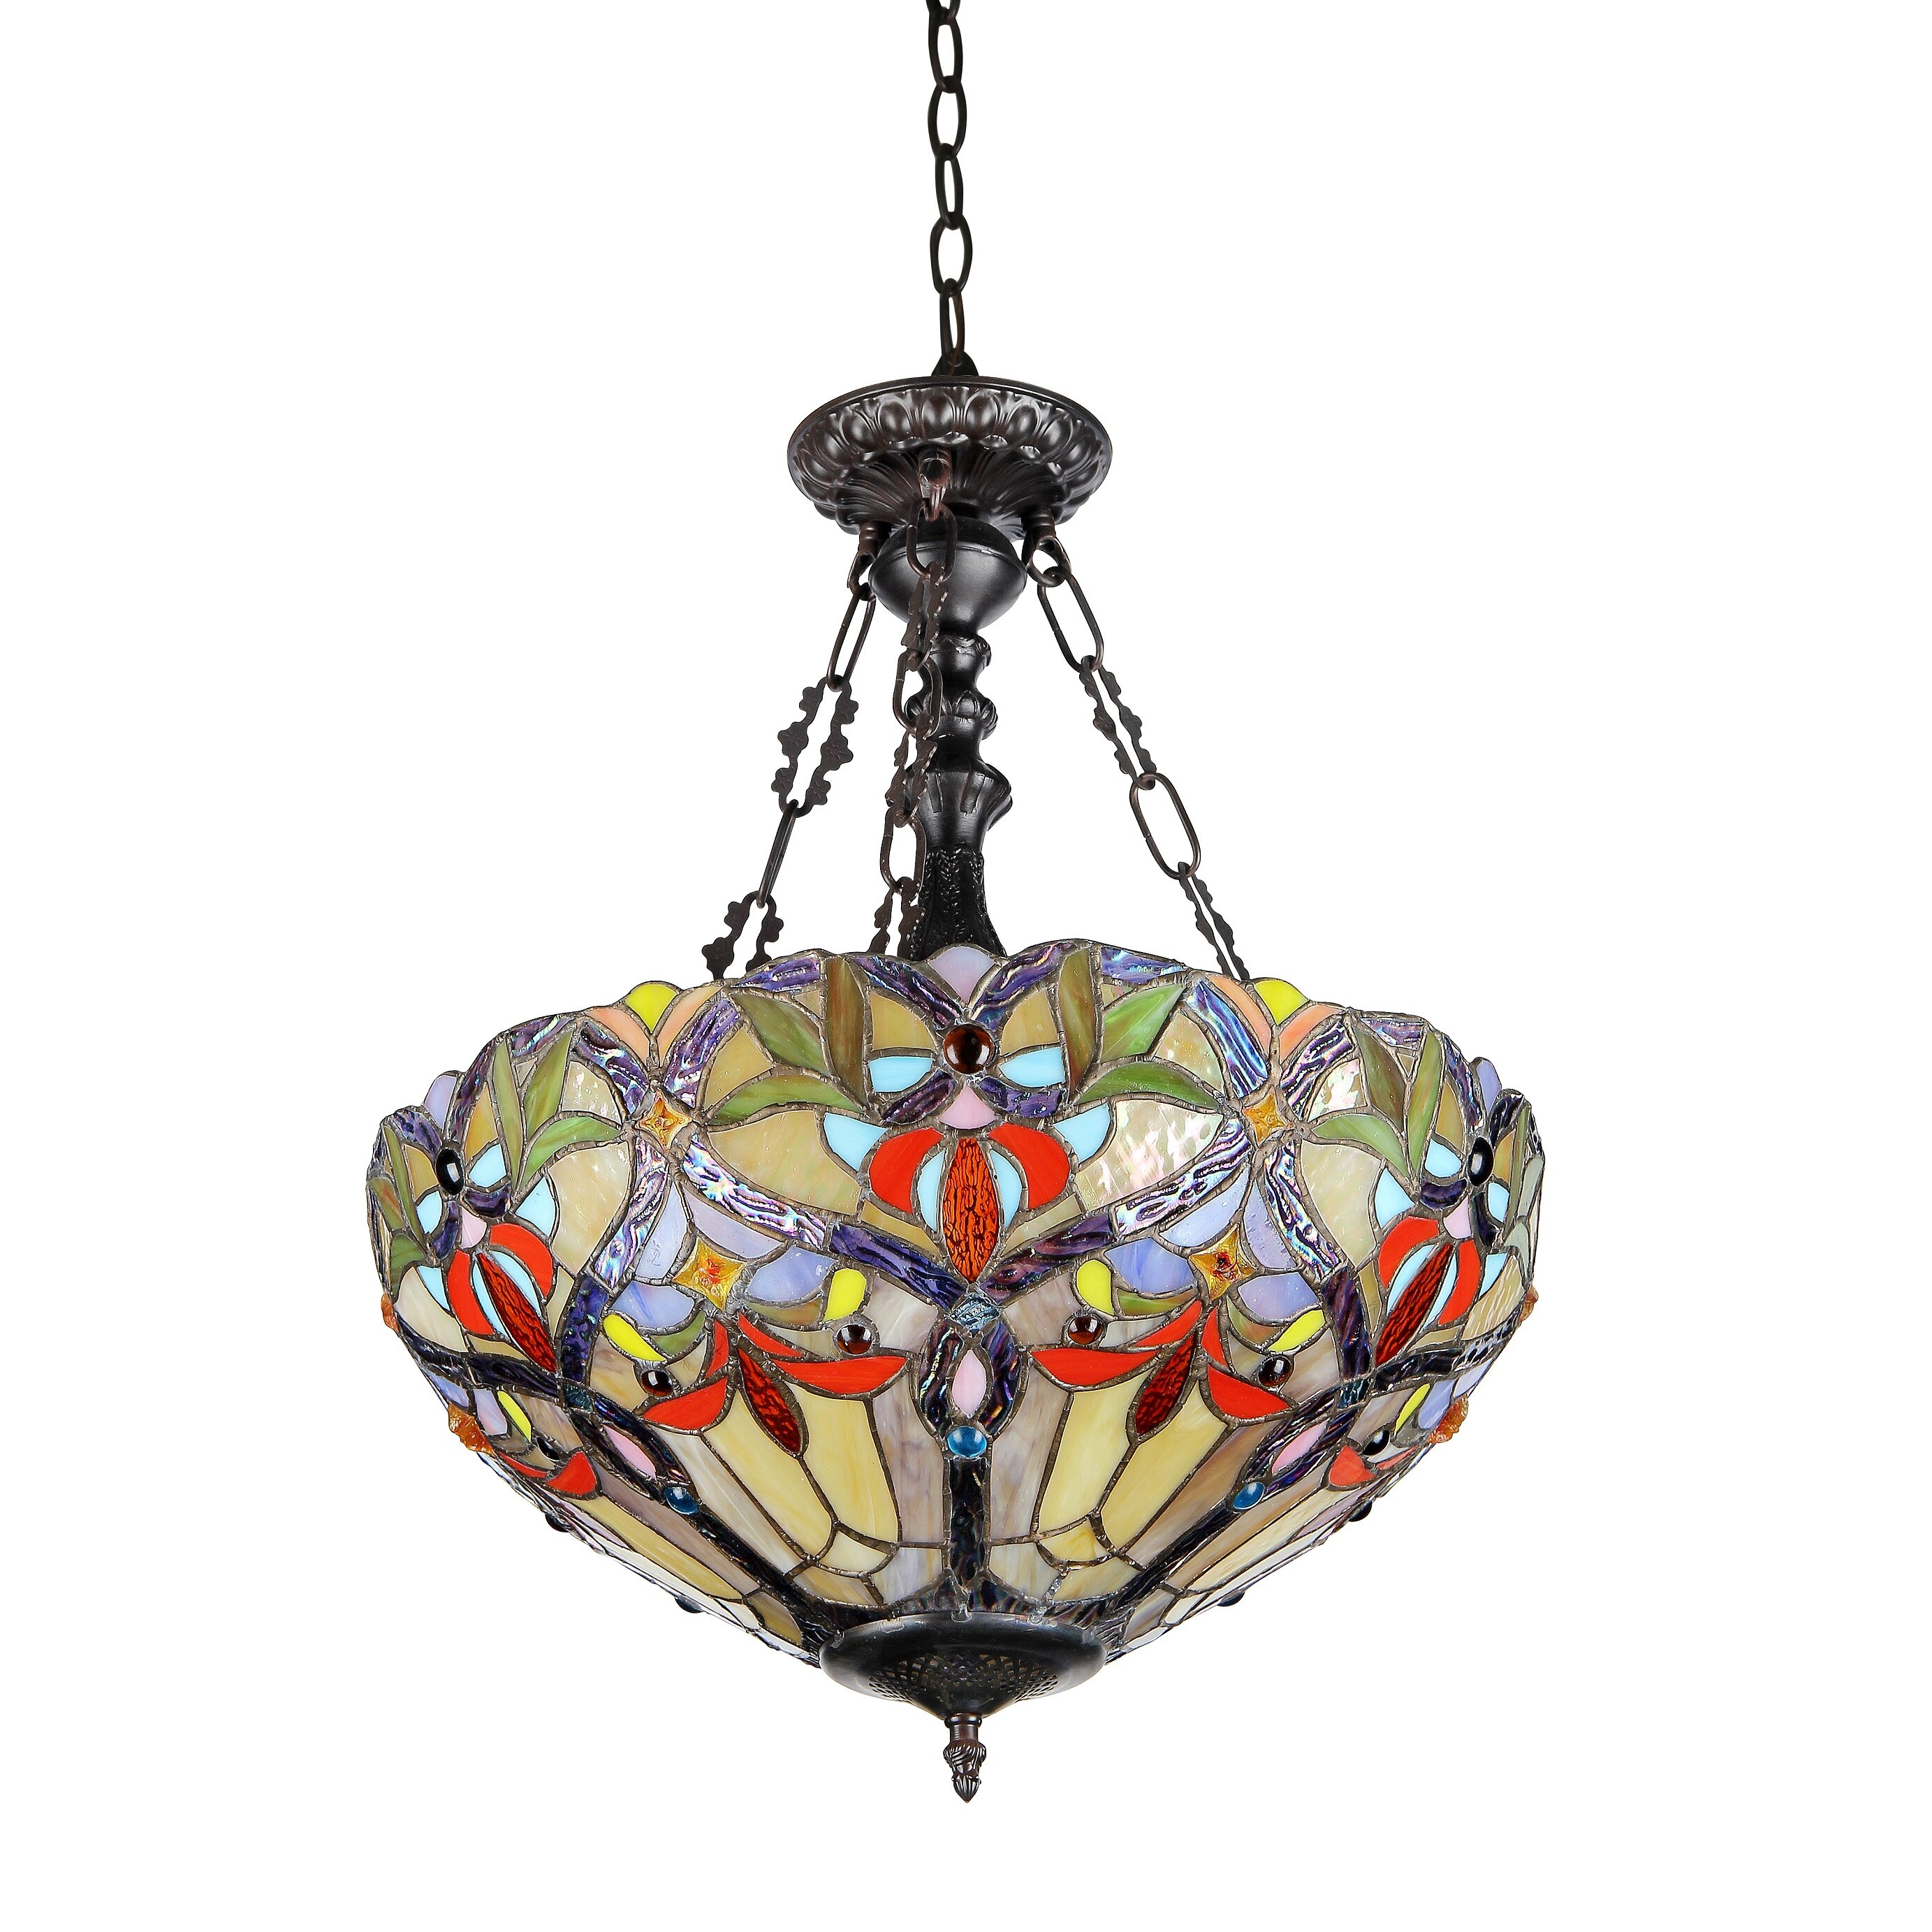 Chloe Lighting Victorian 2 Light Byron Inverted Ceiling